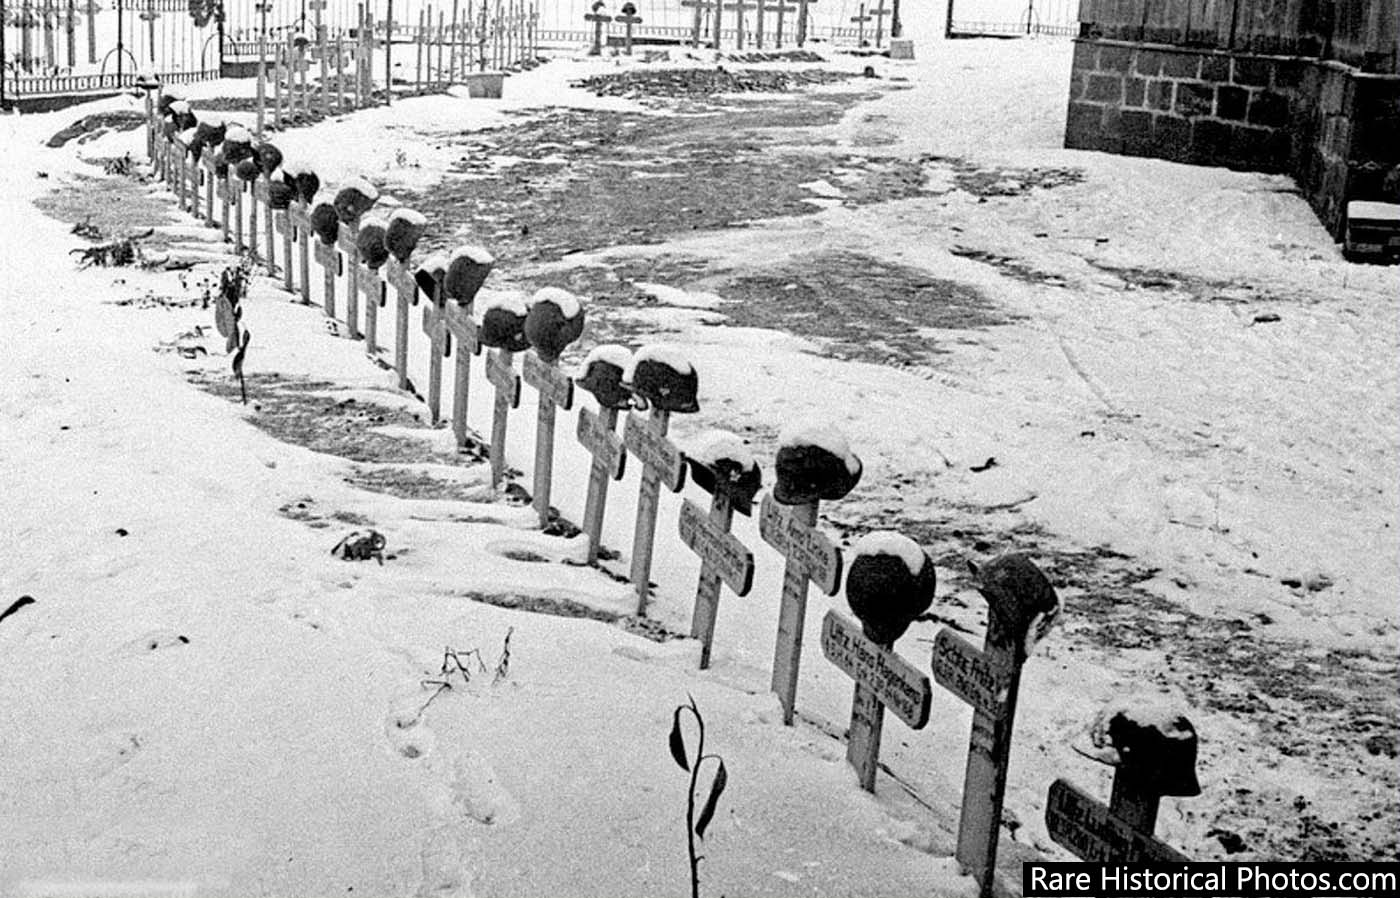 The Germans interred at Stalingrad.